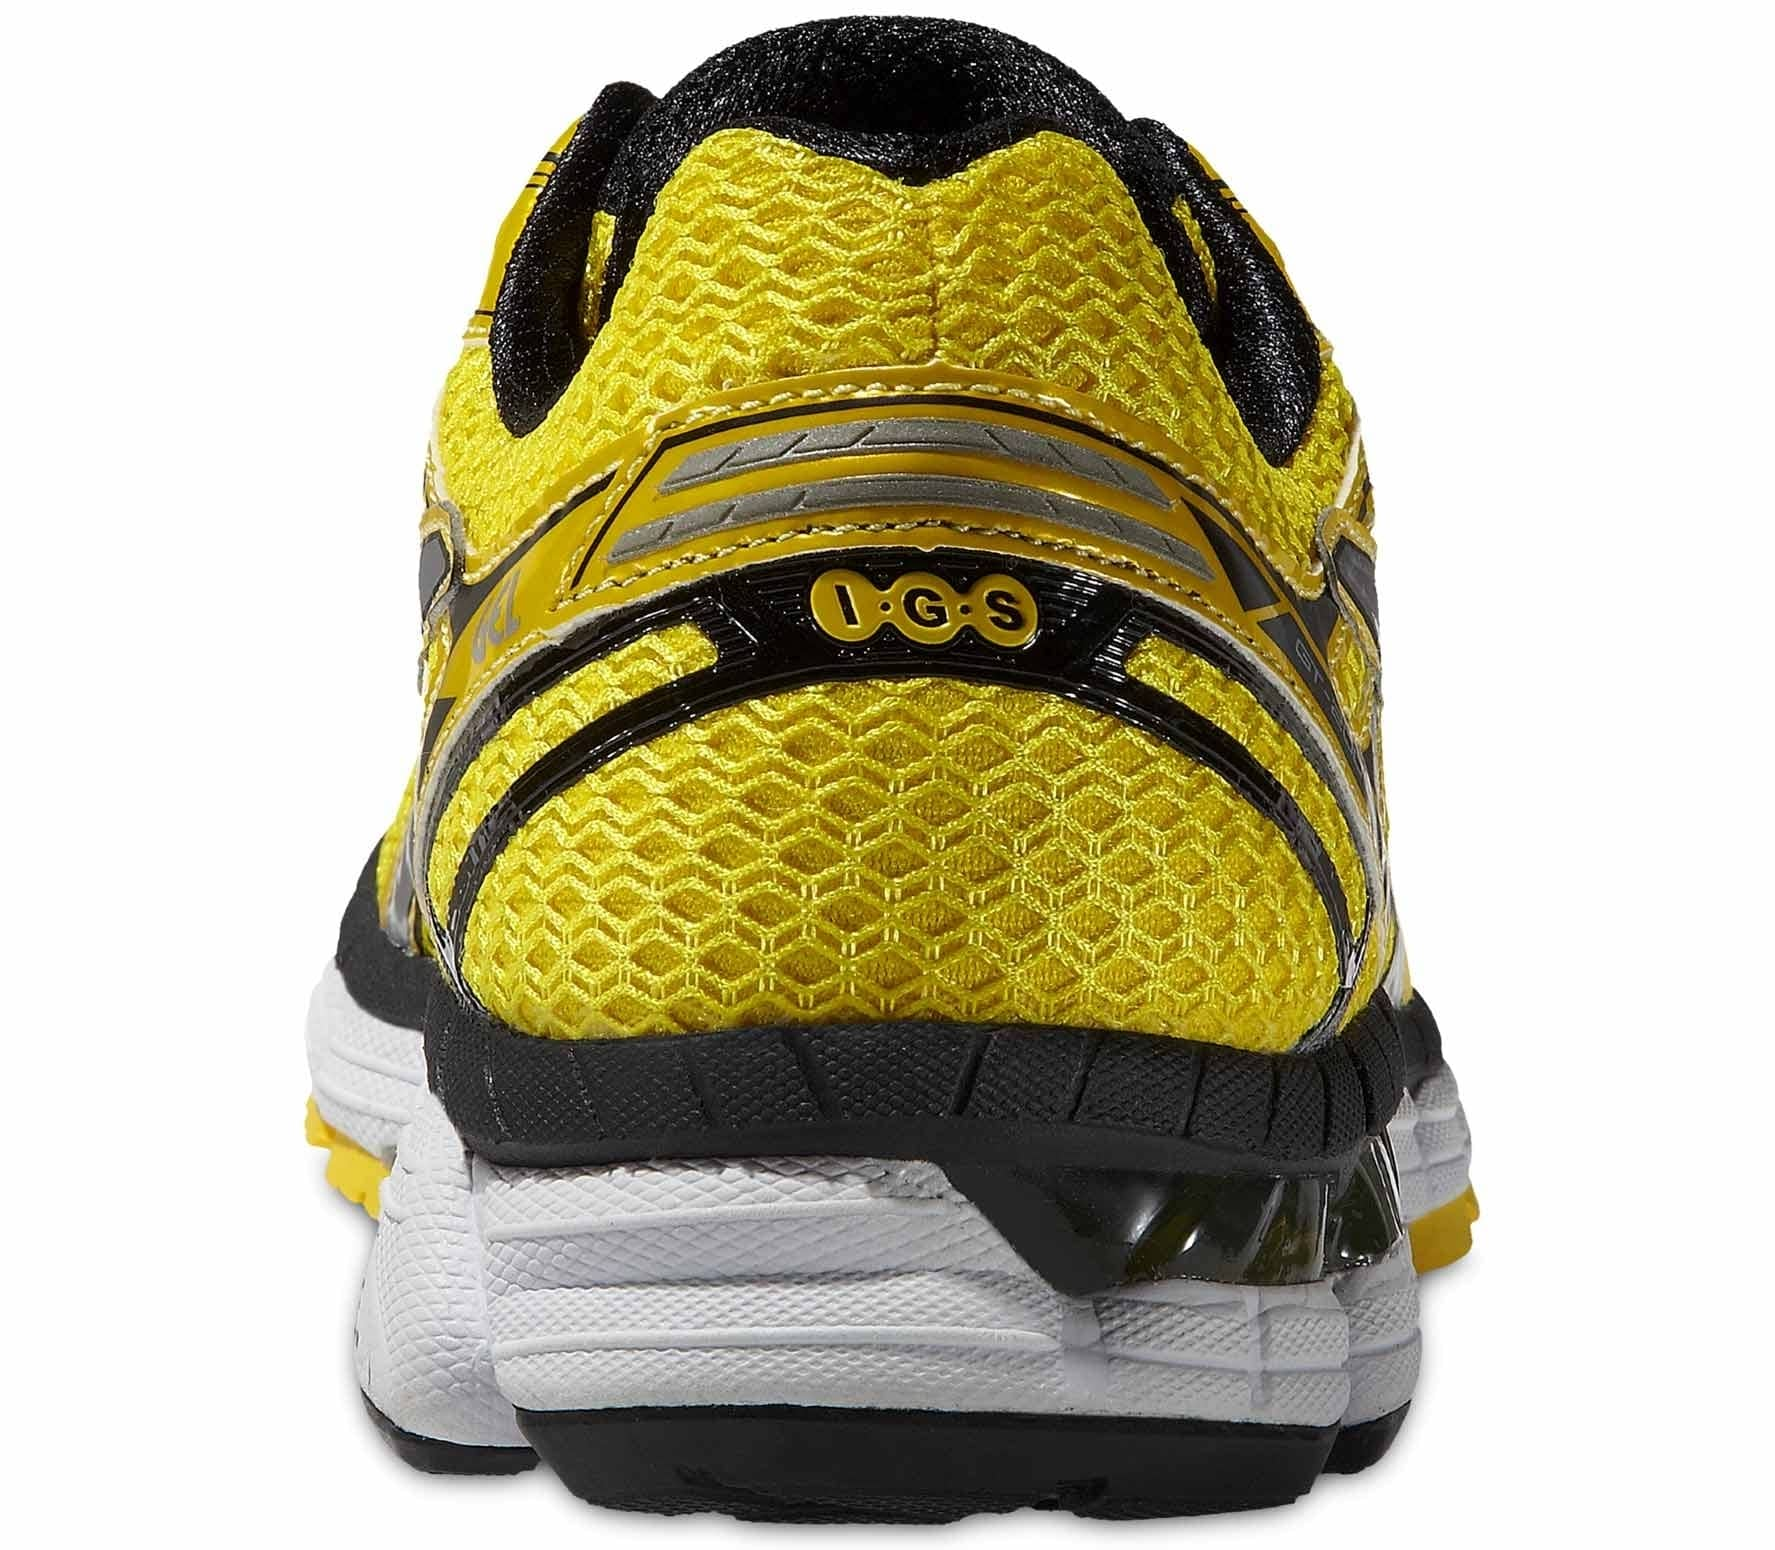 eb537f4b44 Asics - GT-2000 2 men's running shoes (yellow) - buy it at the ...